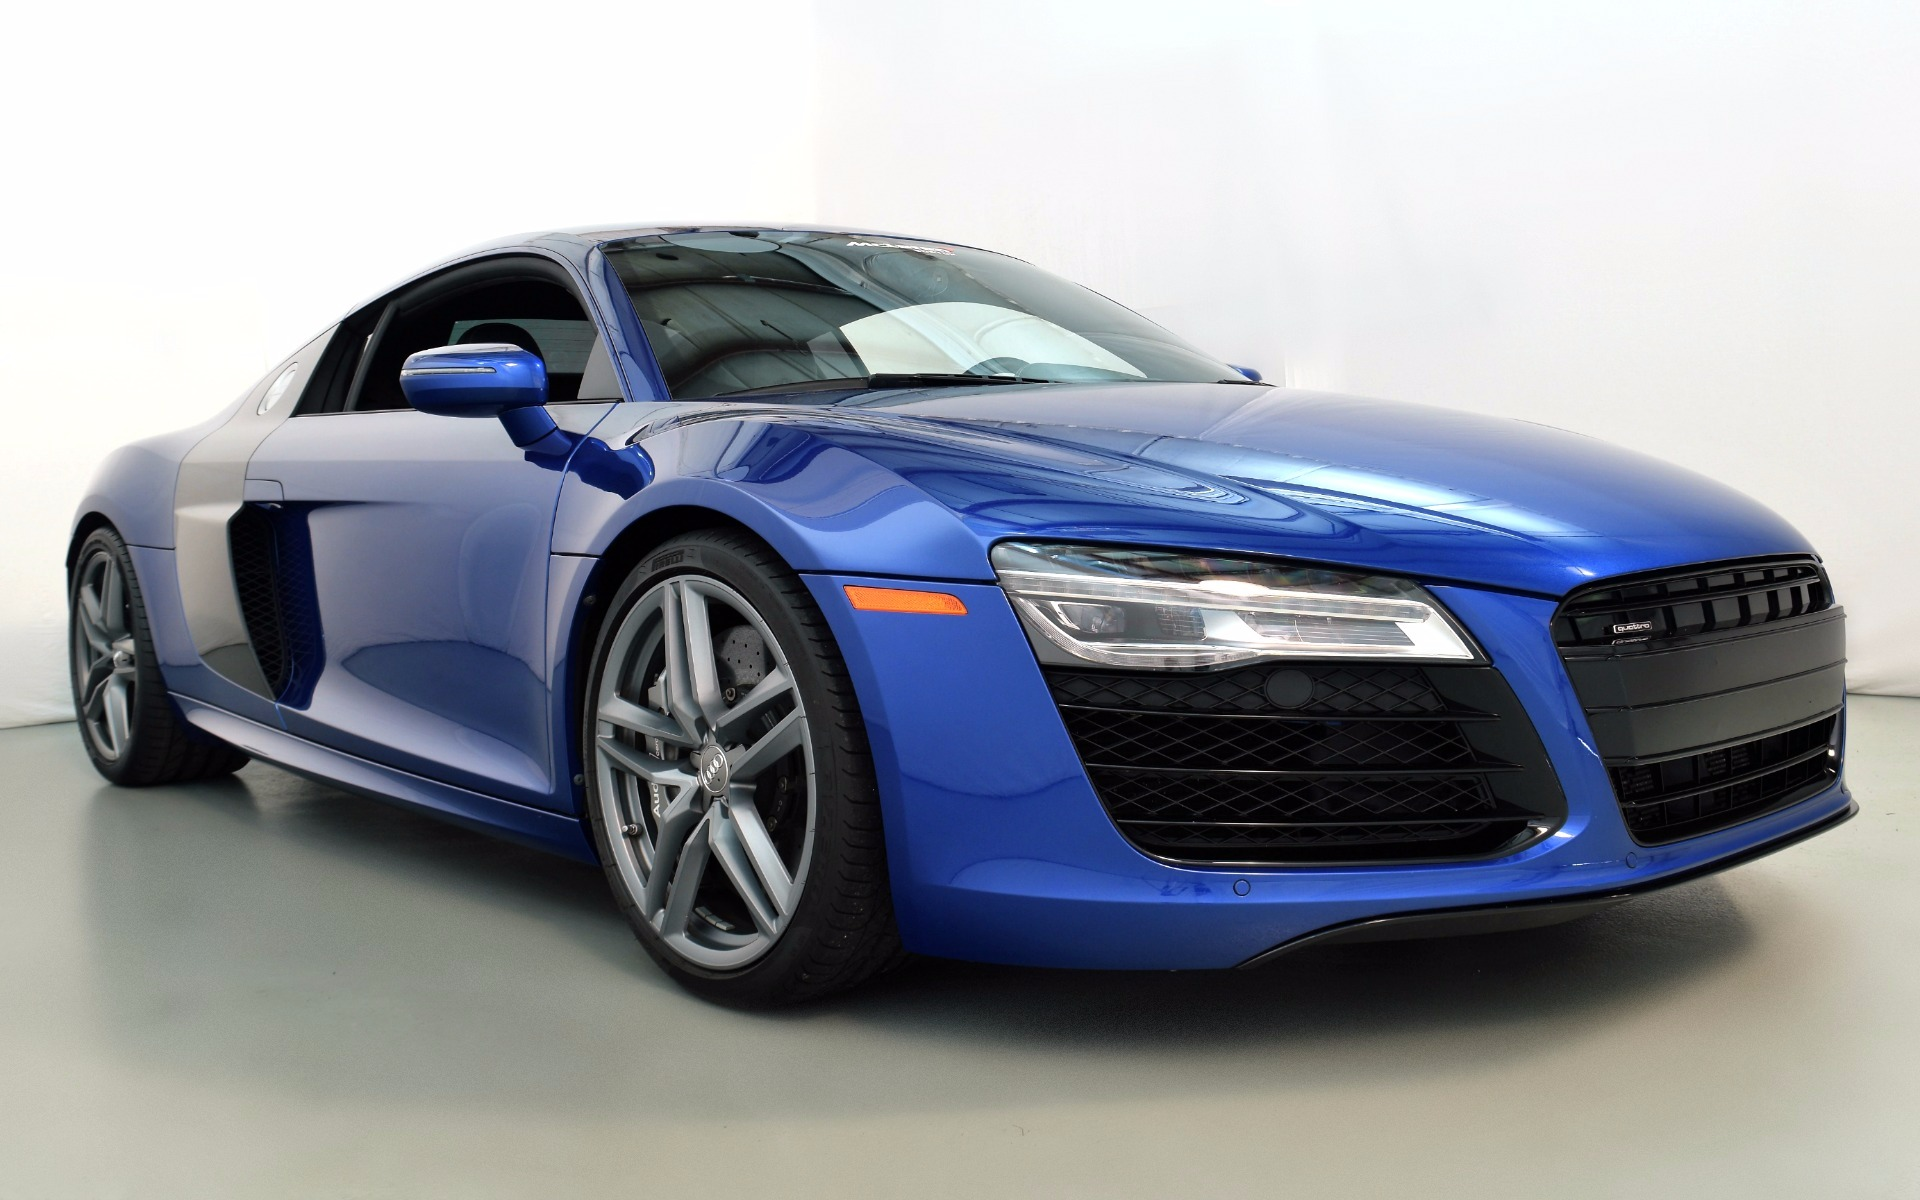 2014 Audi R8 V10 For Sale in Norwell, MA 002197A | Mclaren ...